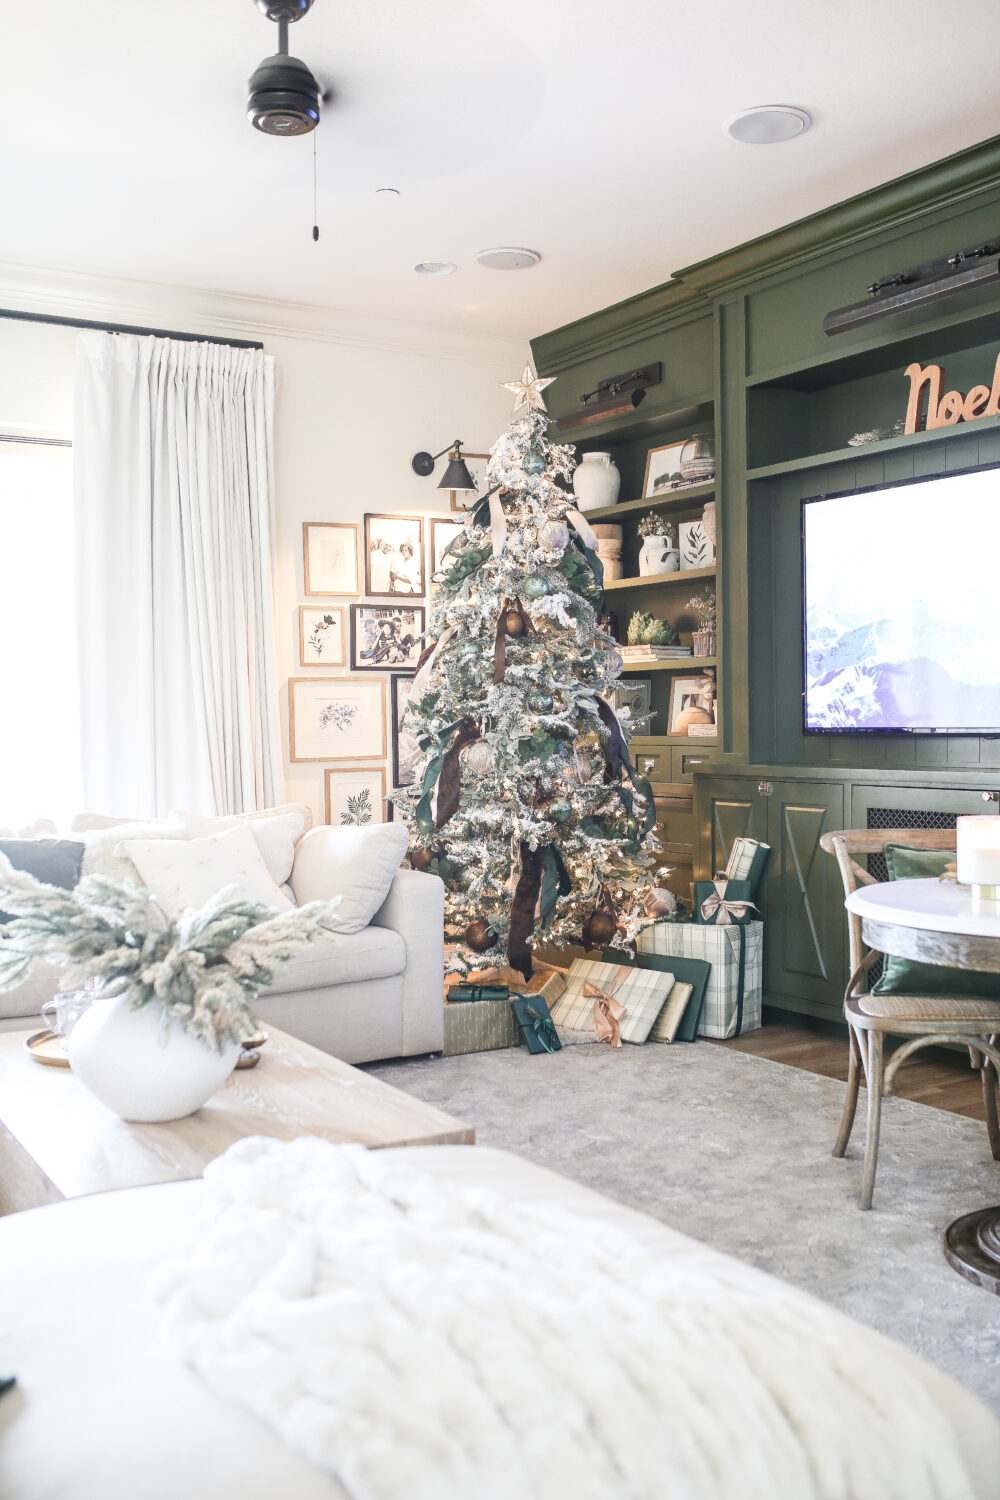 2020 Holiday Housewalk: A Christmas Home Tour of some of my Favorite Spaces